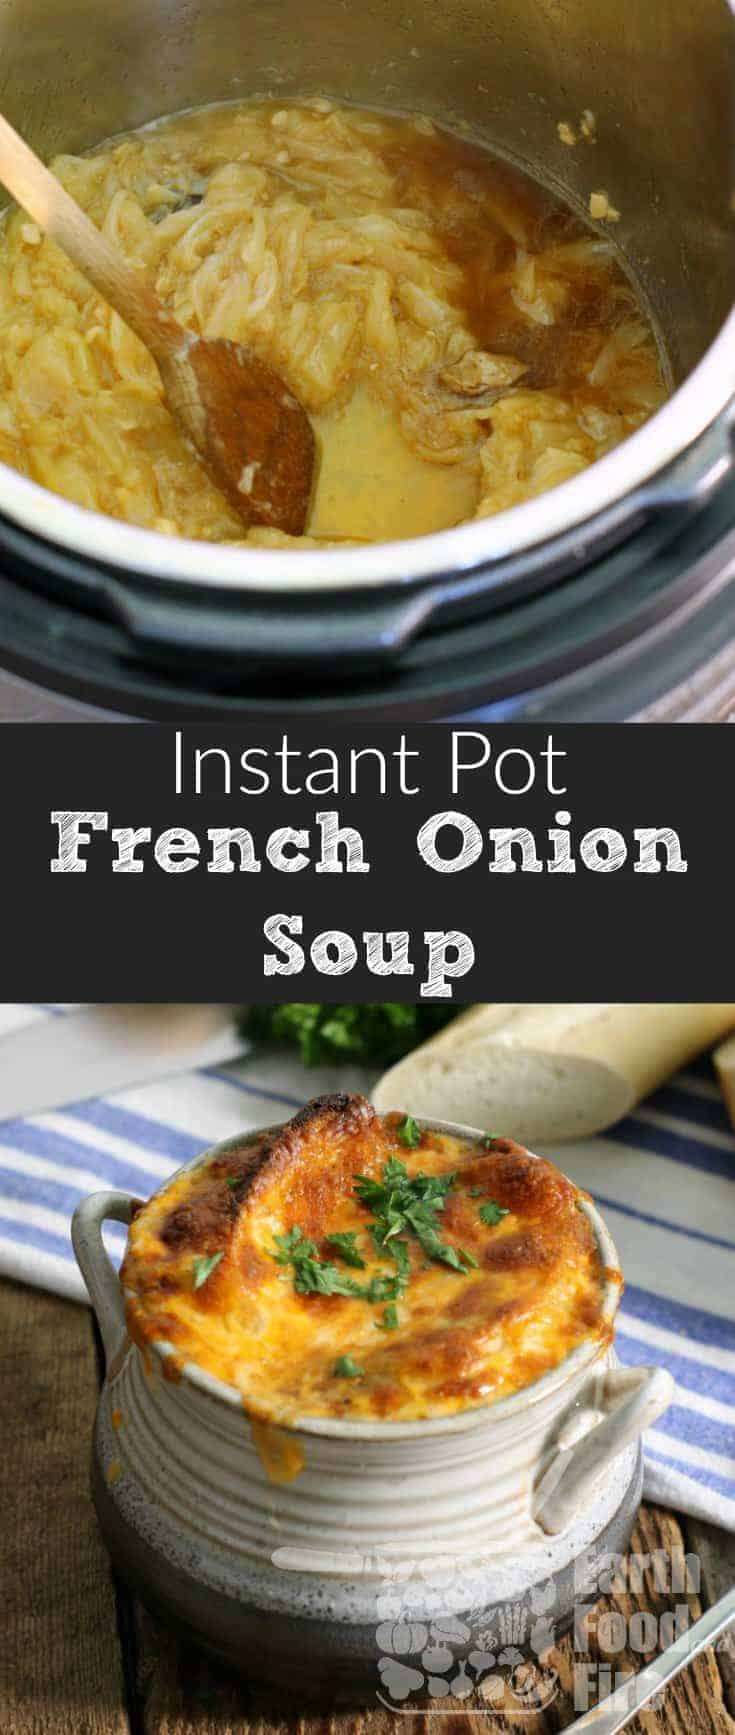 A classic soup full of sweet caramelized onions, rich beef broth, and topped with cheesy goodness, making restaurant quality French onion soup couldn't be easier then this! #glutenfree #soup #frenchonionsoup #instantpot